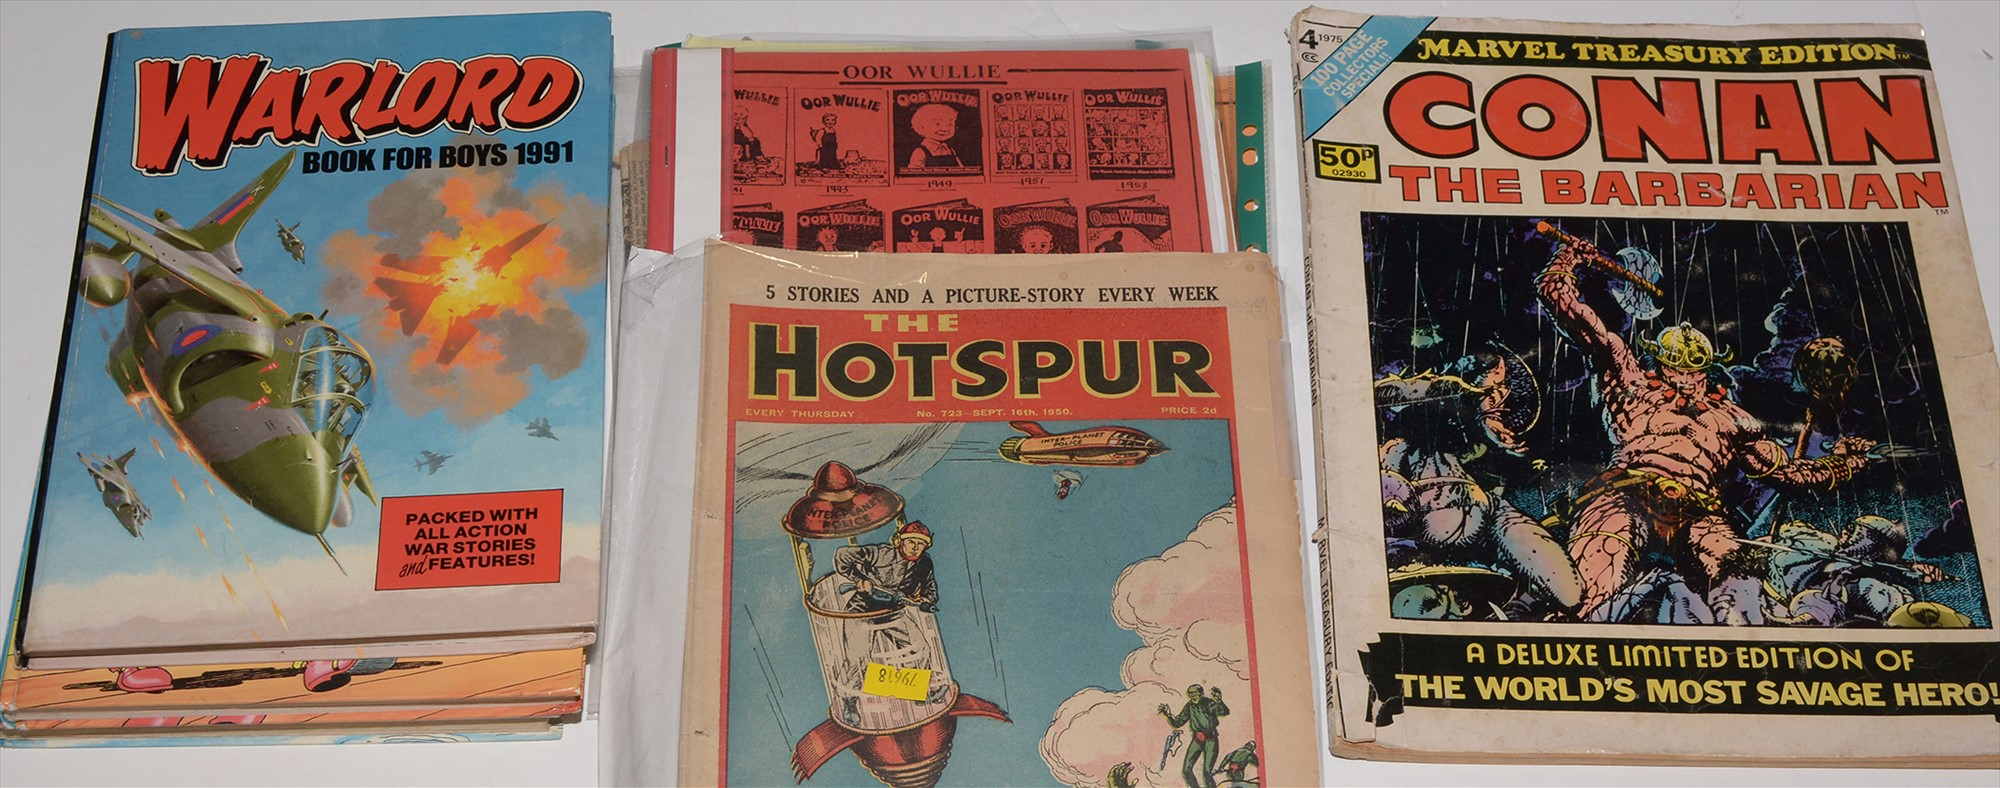 The Hotspur and other comics and annuals.